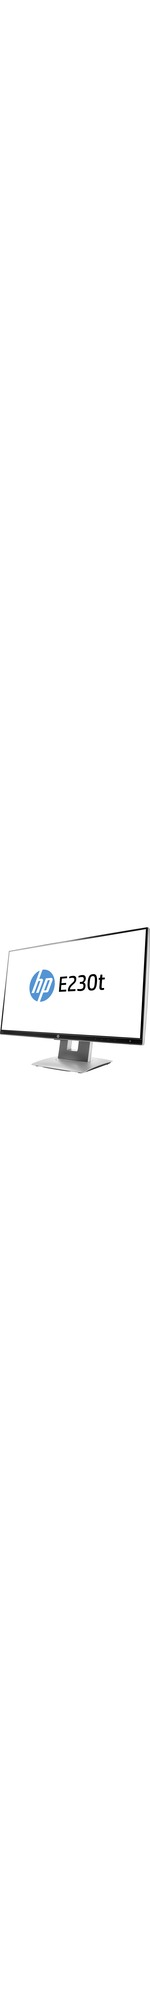 HP Business E230t 58.4 cm 23And#34; LCD Touchscreen Monitor - 16:9 - 5 ms